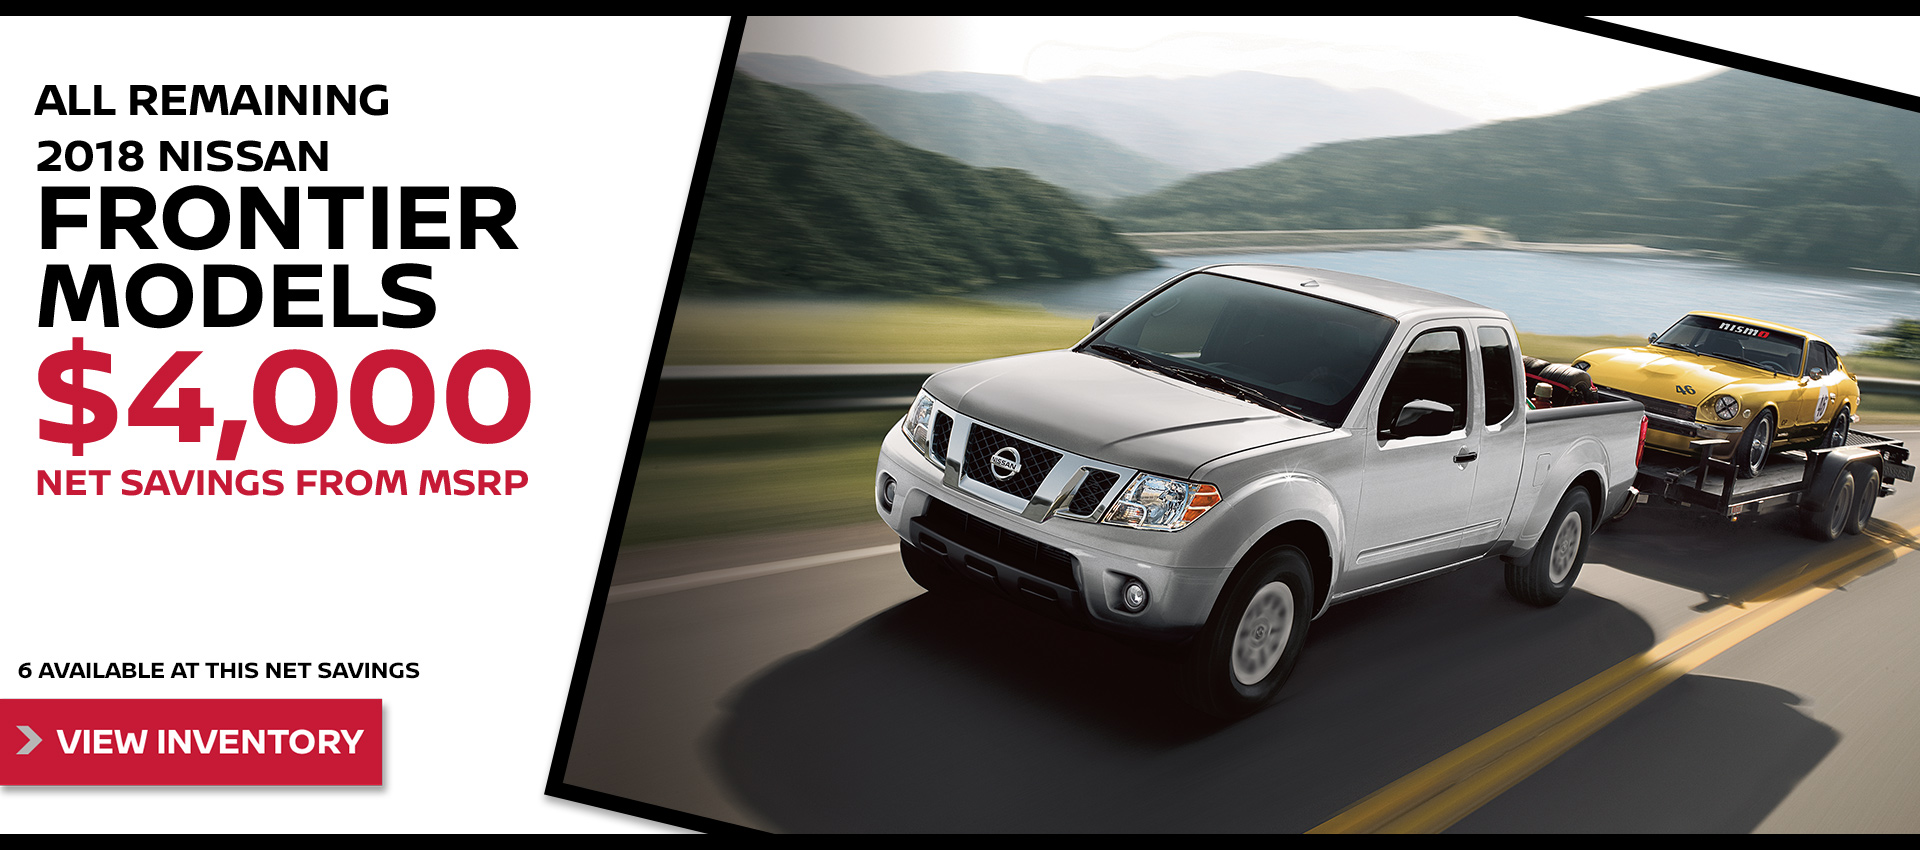 Mossy Nissan - Nissan Frontier $4k OFF MSRP HP